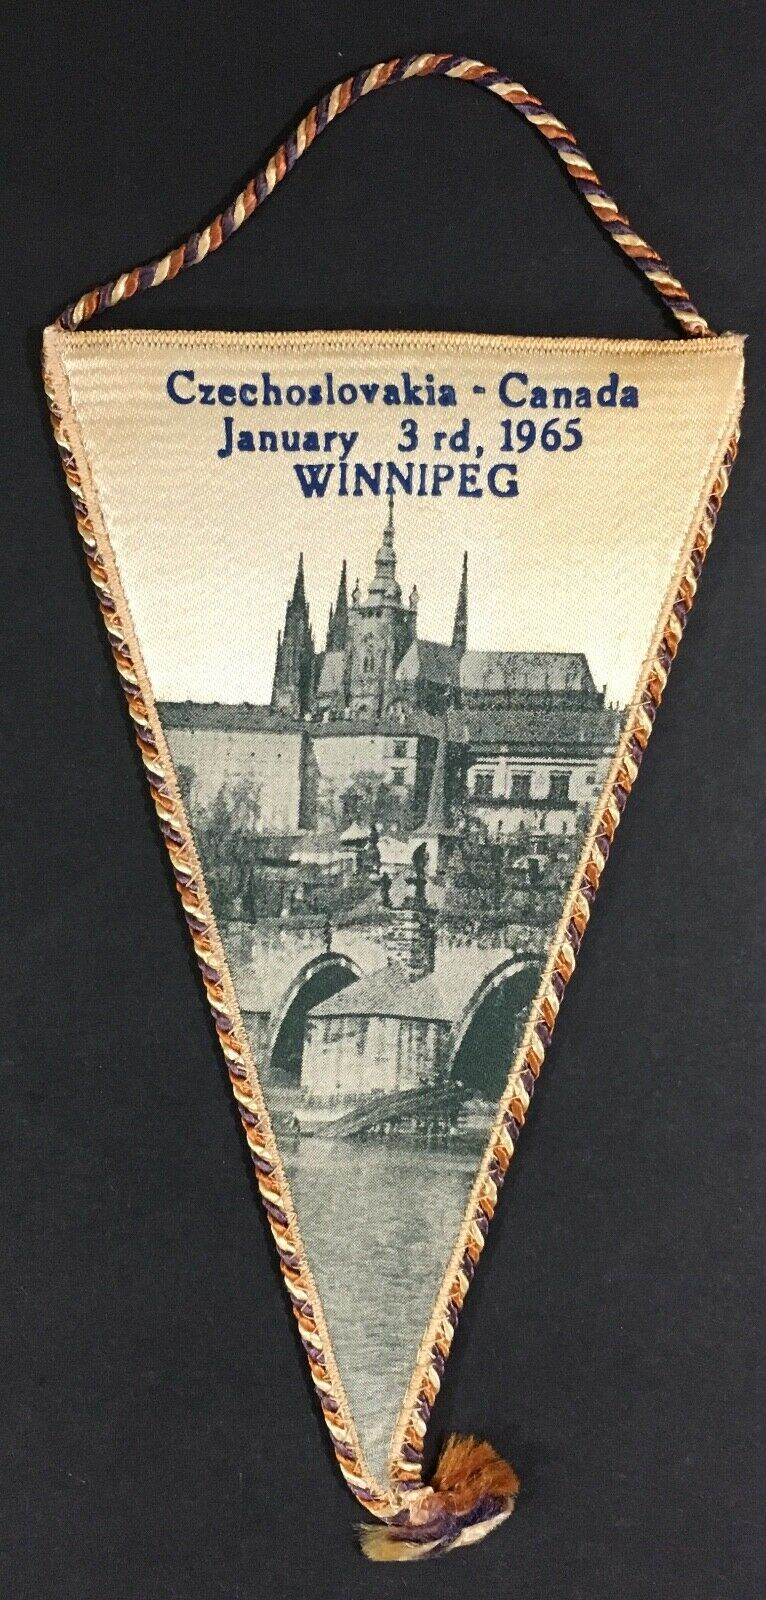 1965 International Ice Hockey Game Pennant Czechoslovakia Canada Winnipeg